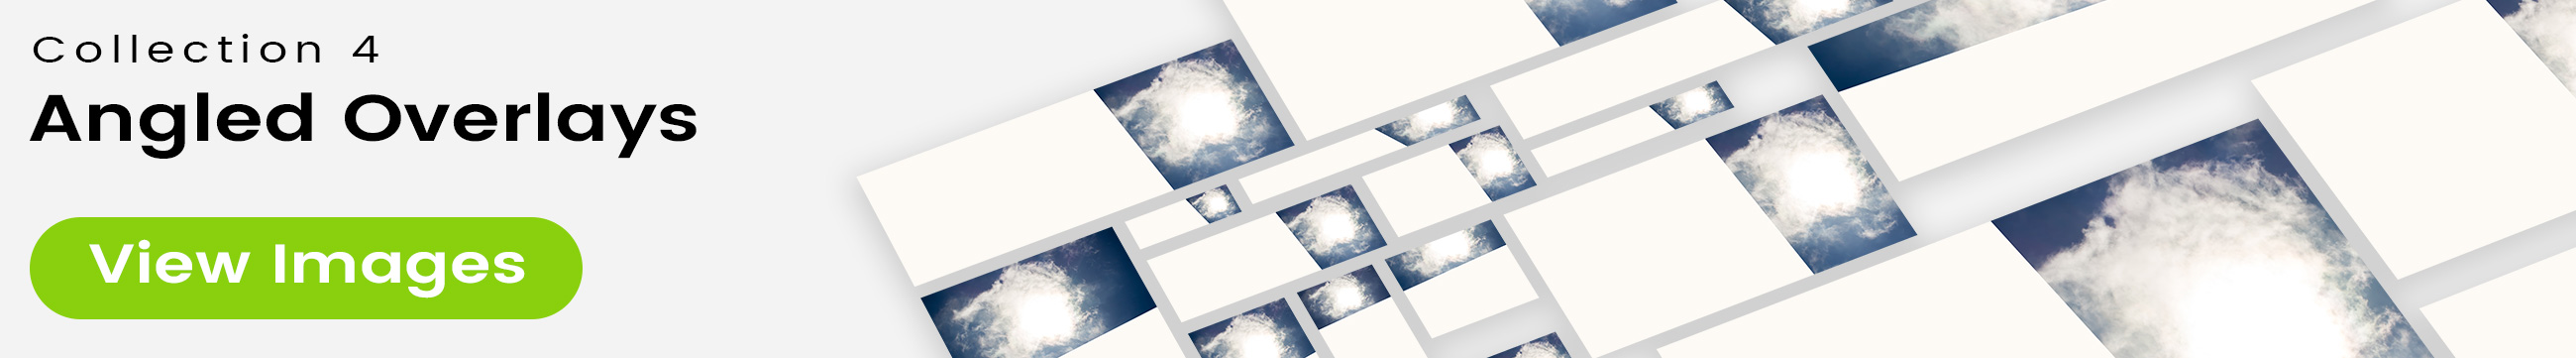 See 25 bonus images included with clouds stock image 9477. Collection 4 of 4 features an angled overlay design customized with a color that complements each photo.